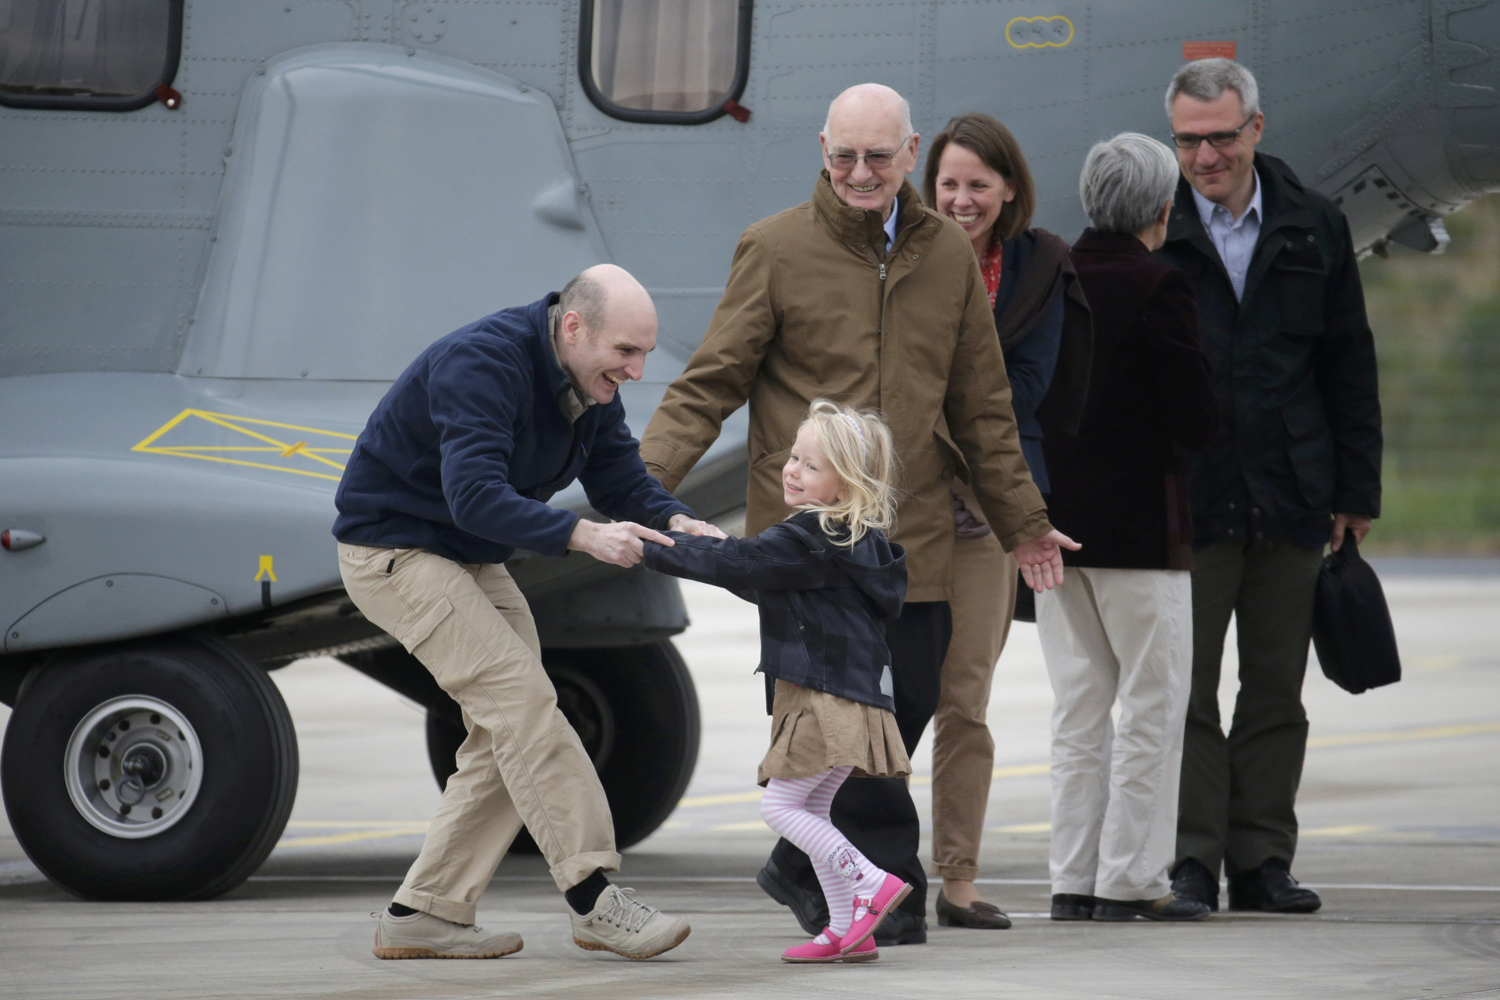 Nicolas Henin (L), former French hostage and journalist, is greeted by his family moments after a transfer by helicopter from Evreux to the military airbase in Villacoublay, near Paris, April 20, 2014.